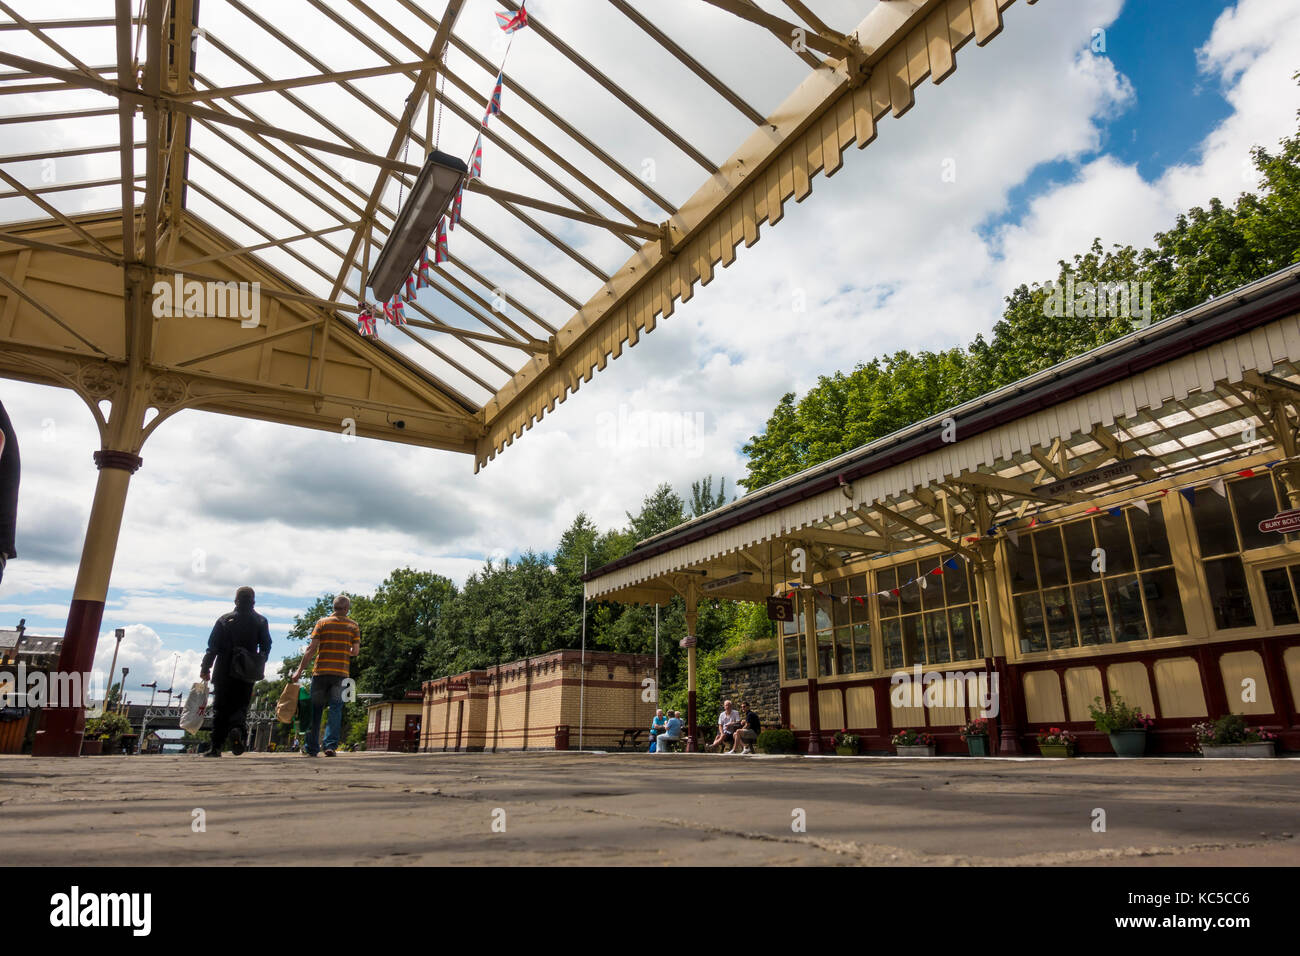 Railway Platform at Bolton Street Station, Bury on the East Lancashire Railway - Stock Image